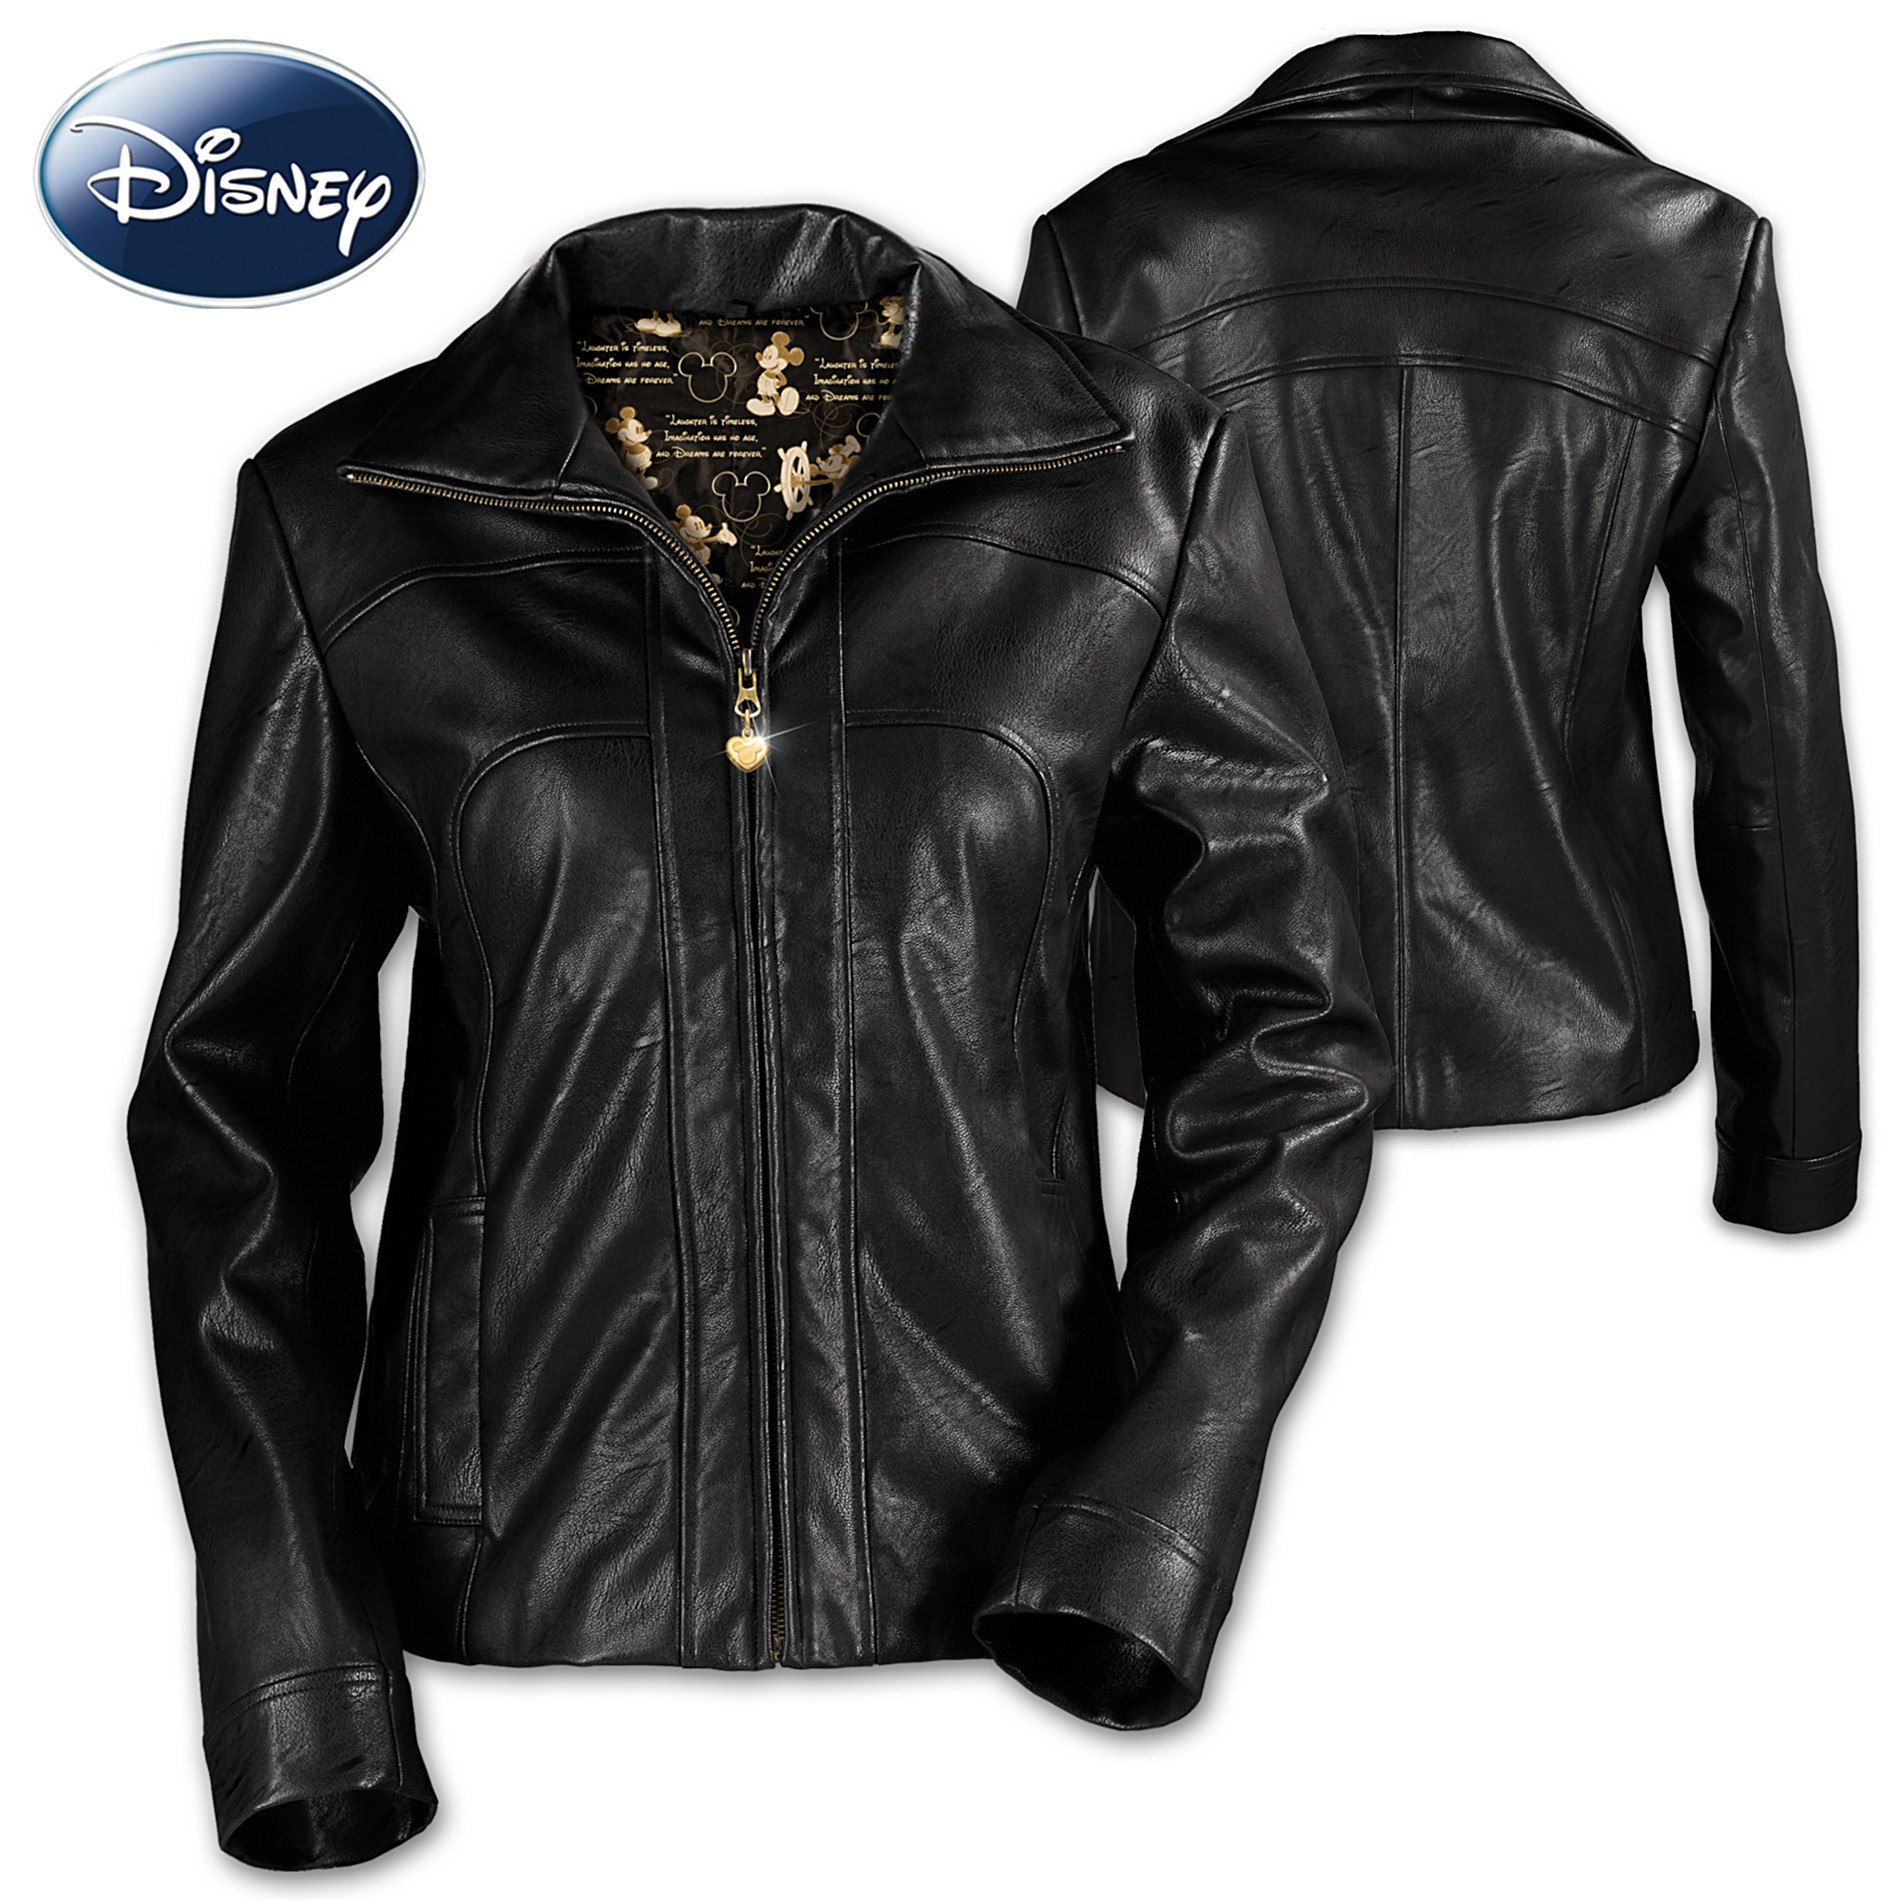 The Bradford Exchange Women's Jacket: Timeless Disney Women's Jacket at Sears.com